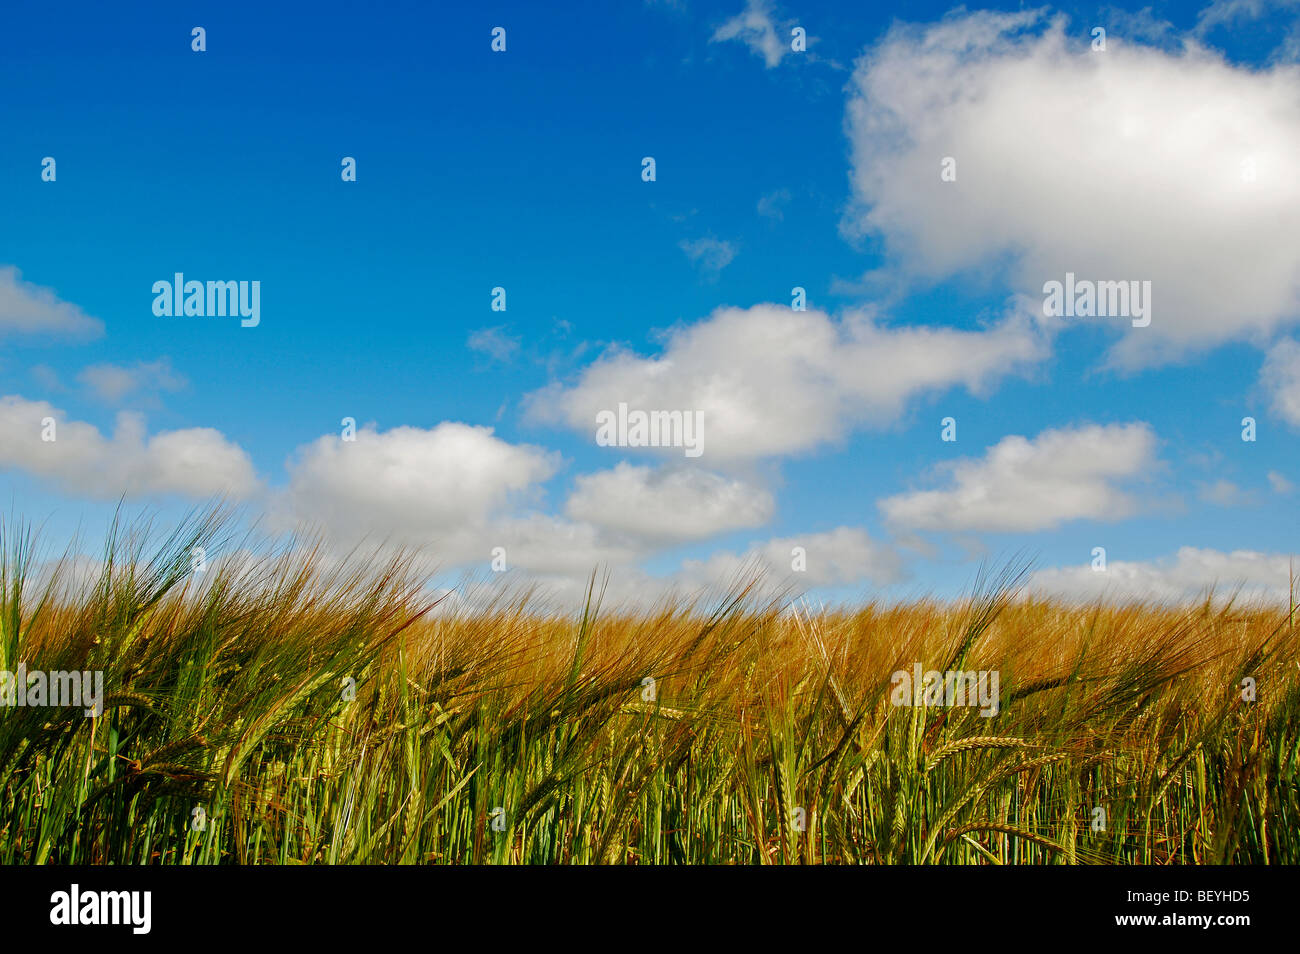 a wheat field in cheshire,england,uk - Stock Image